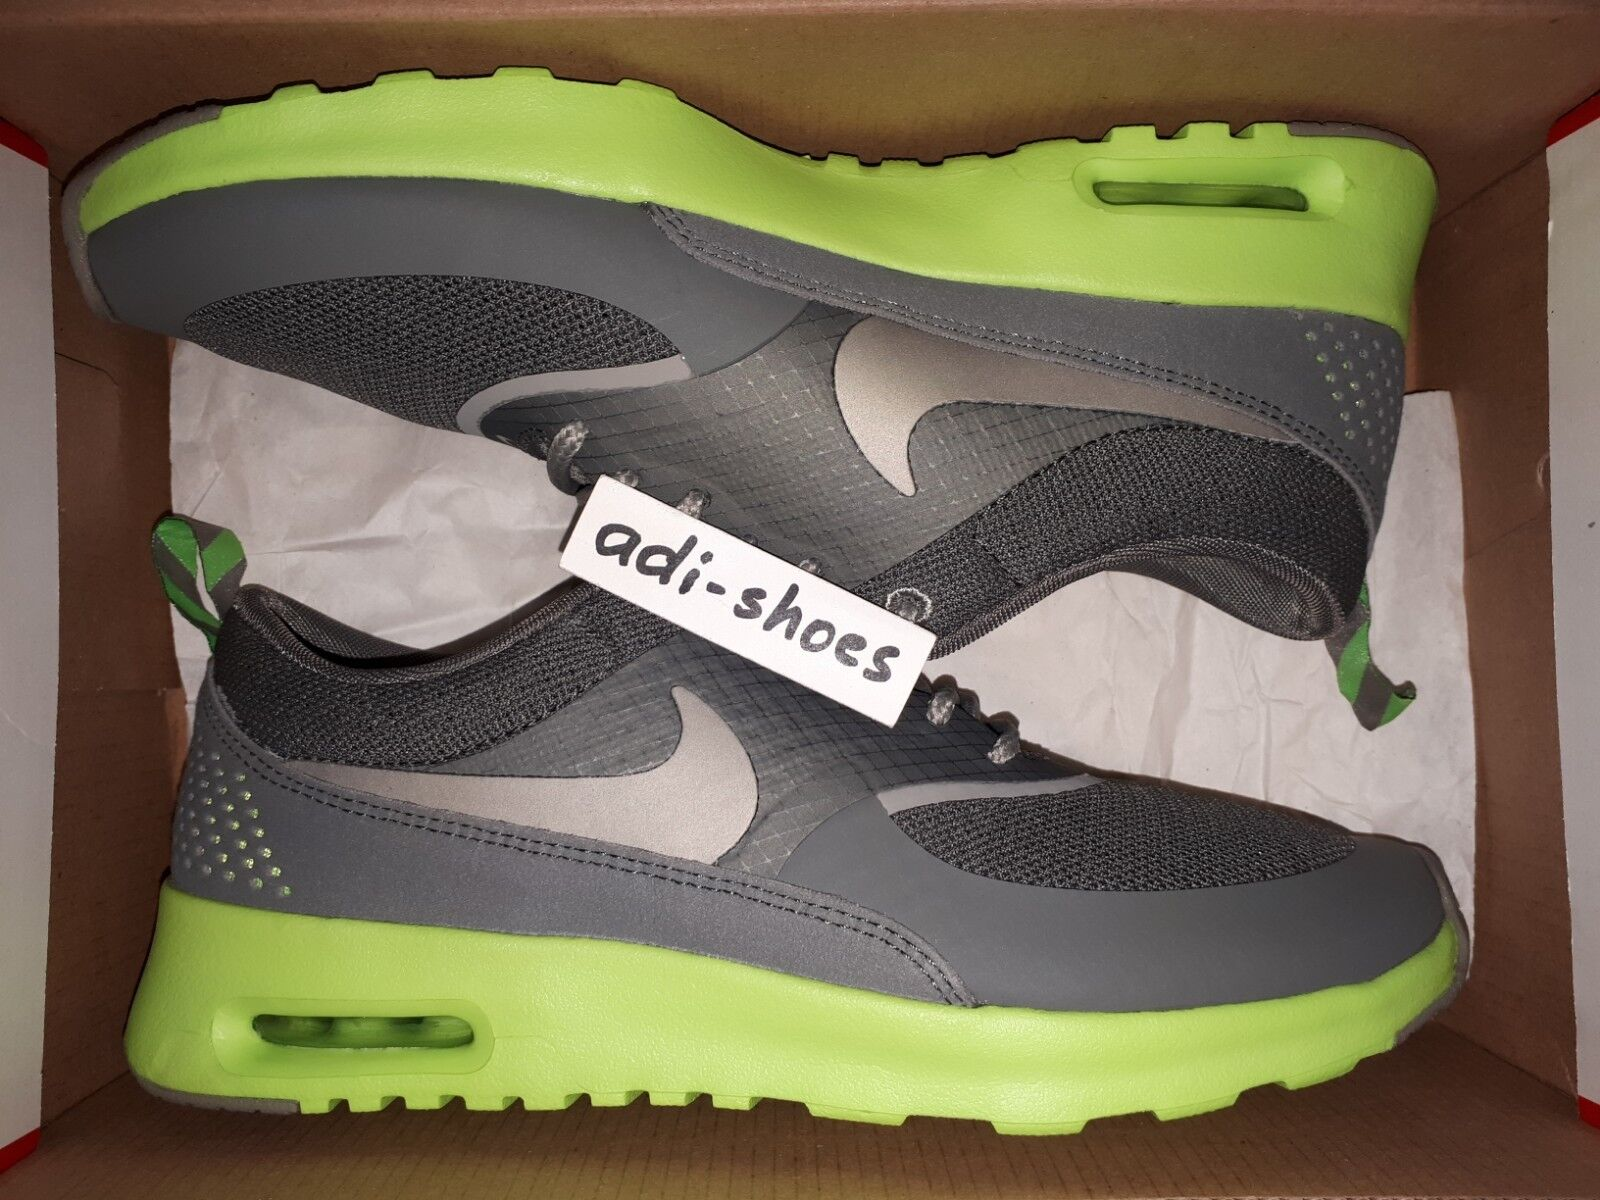 2013 Nike Air Max Thea grigio  Flash Lime  US 7 -9 LotC 59409 -004 Flyed Premium 1  incredibili sconti